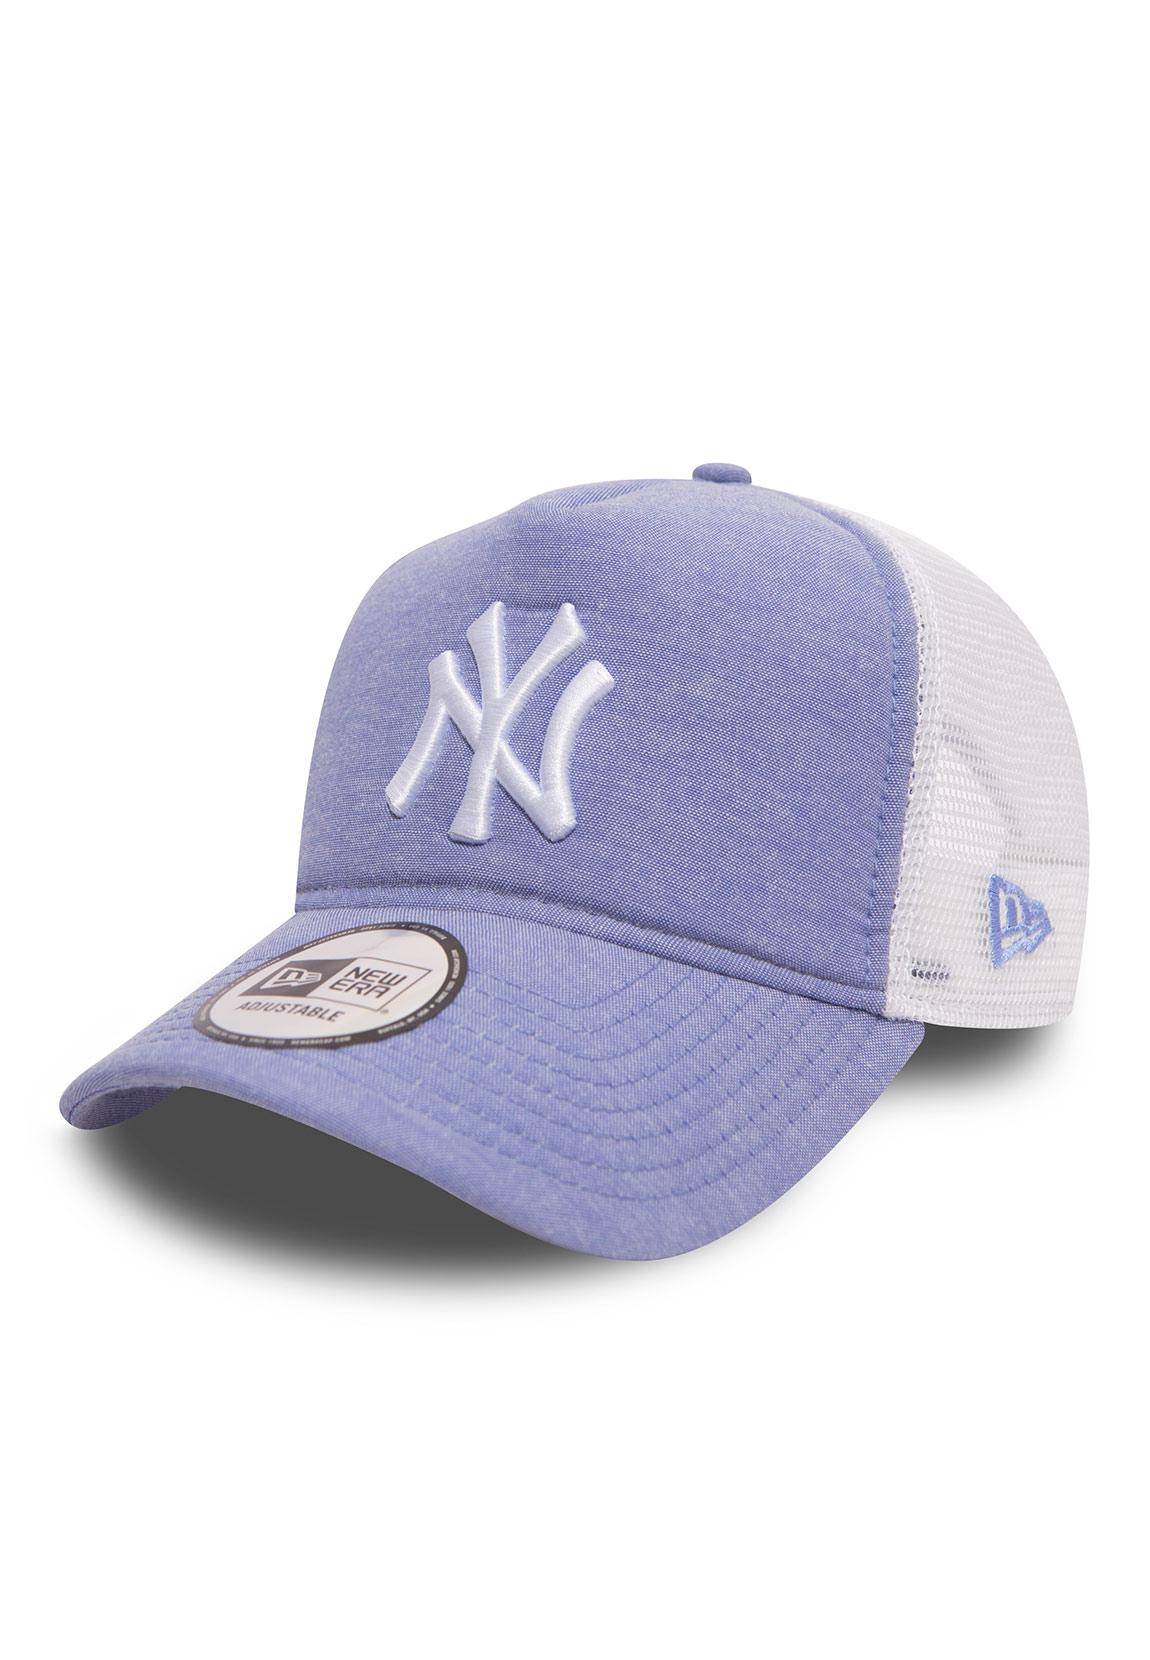 Details about New Era MLB Oxfrd Trucker Ladies Adjustable Cap Ny Yankees  Light Blue b849ac21e19